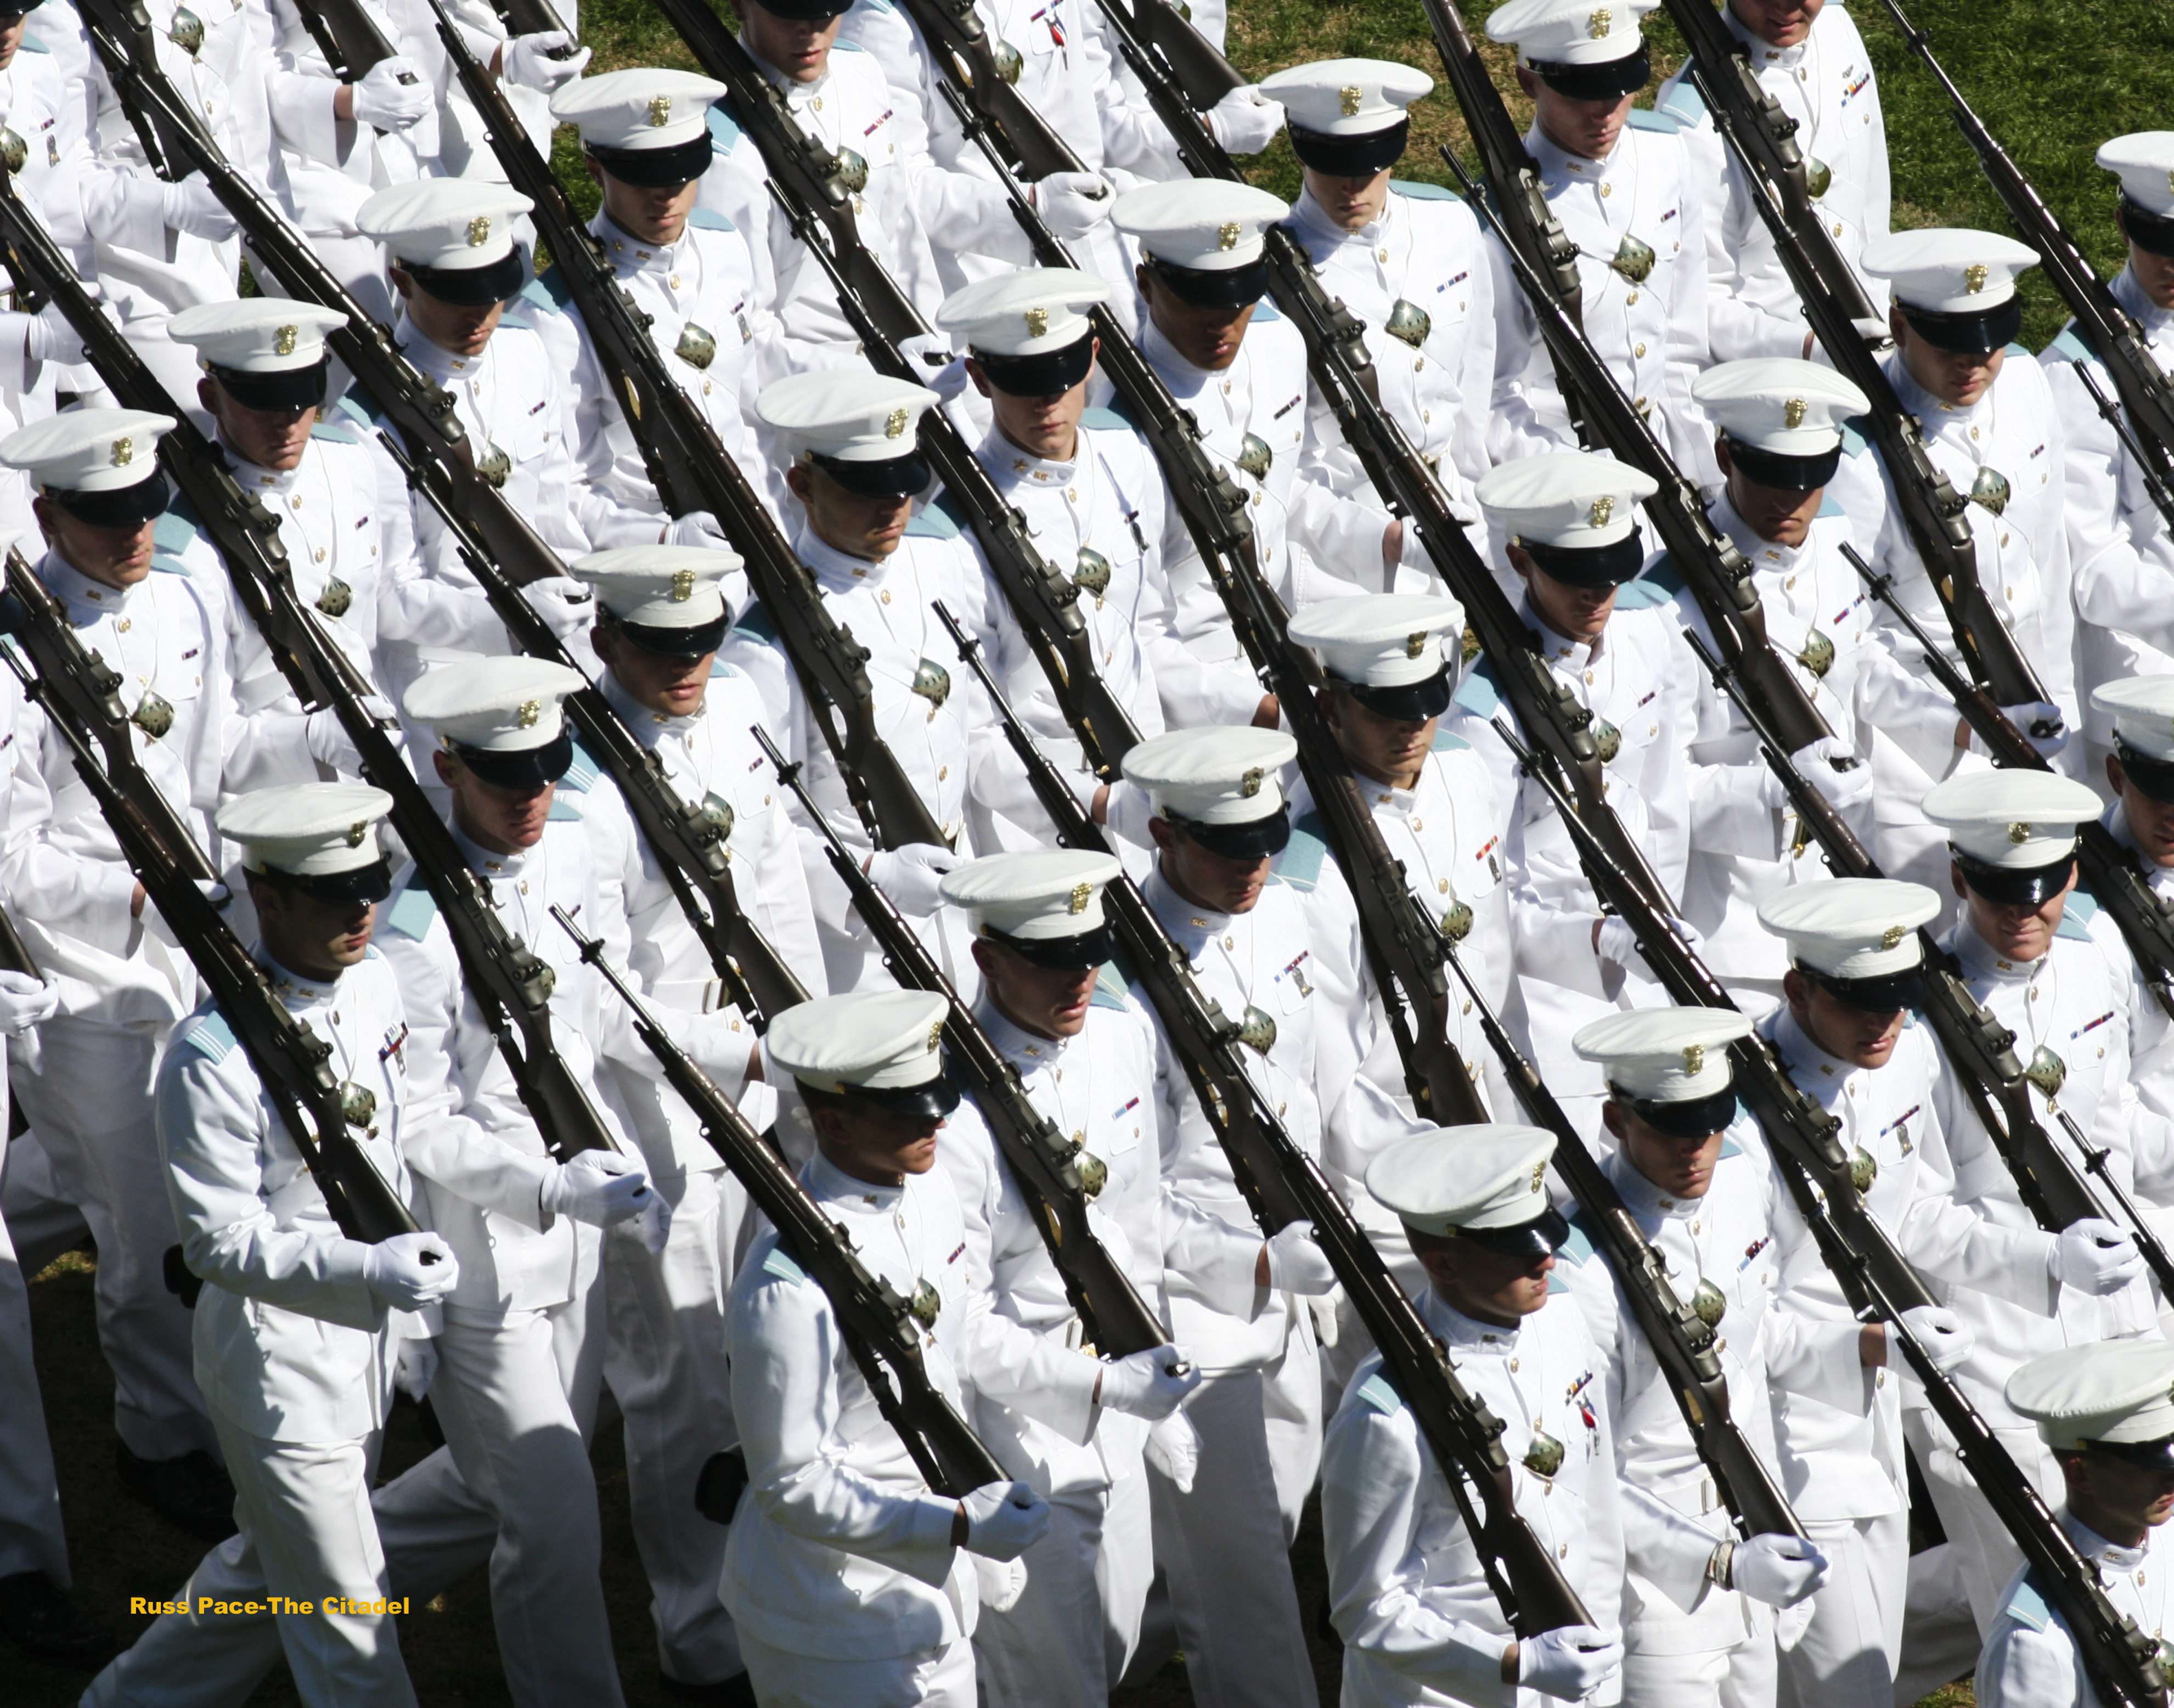 Russ Pace photo of summer uniform cadet formation